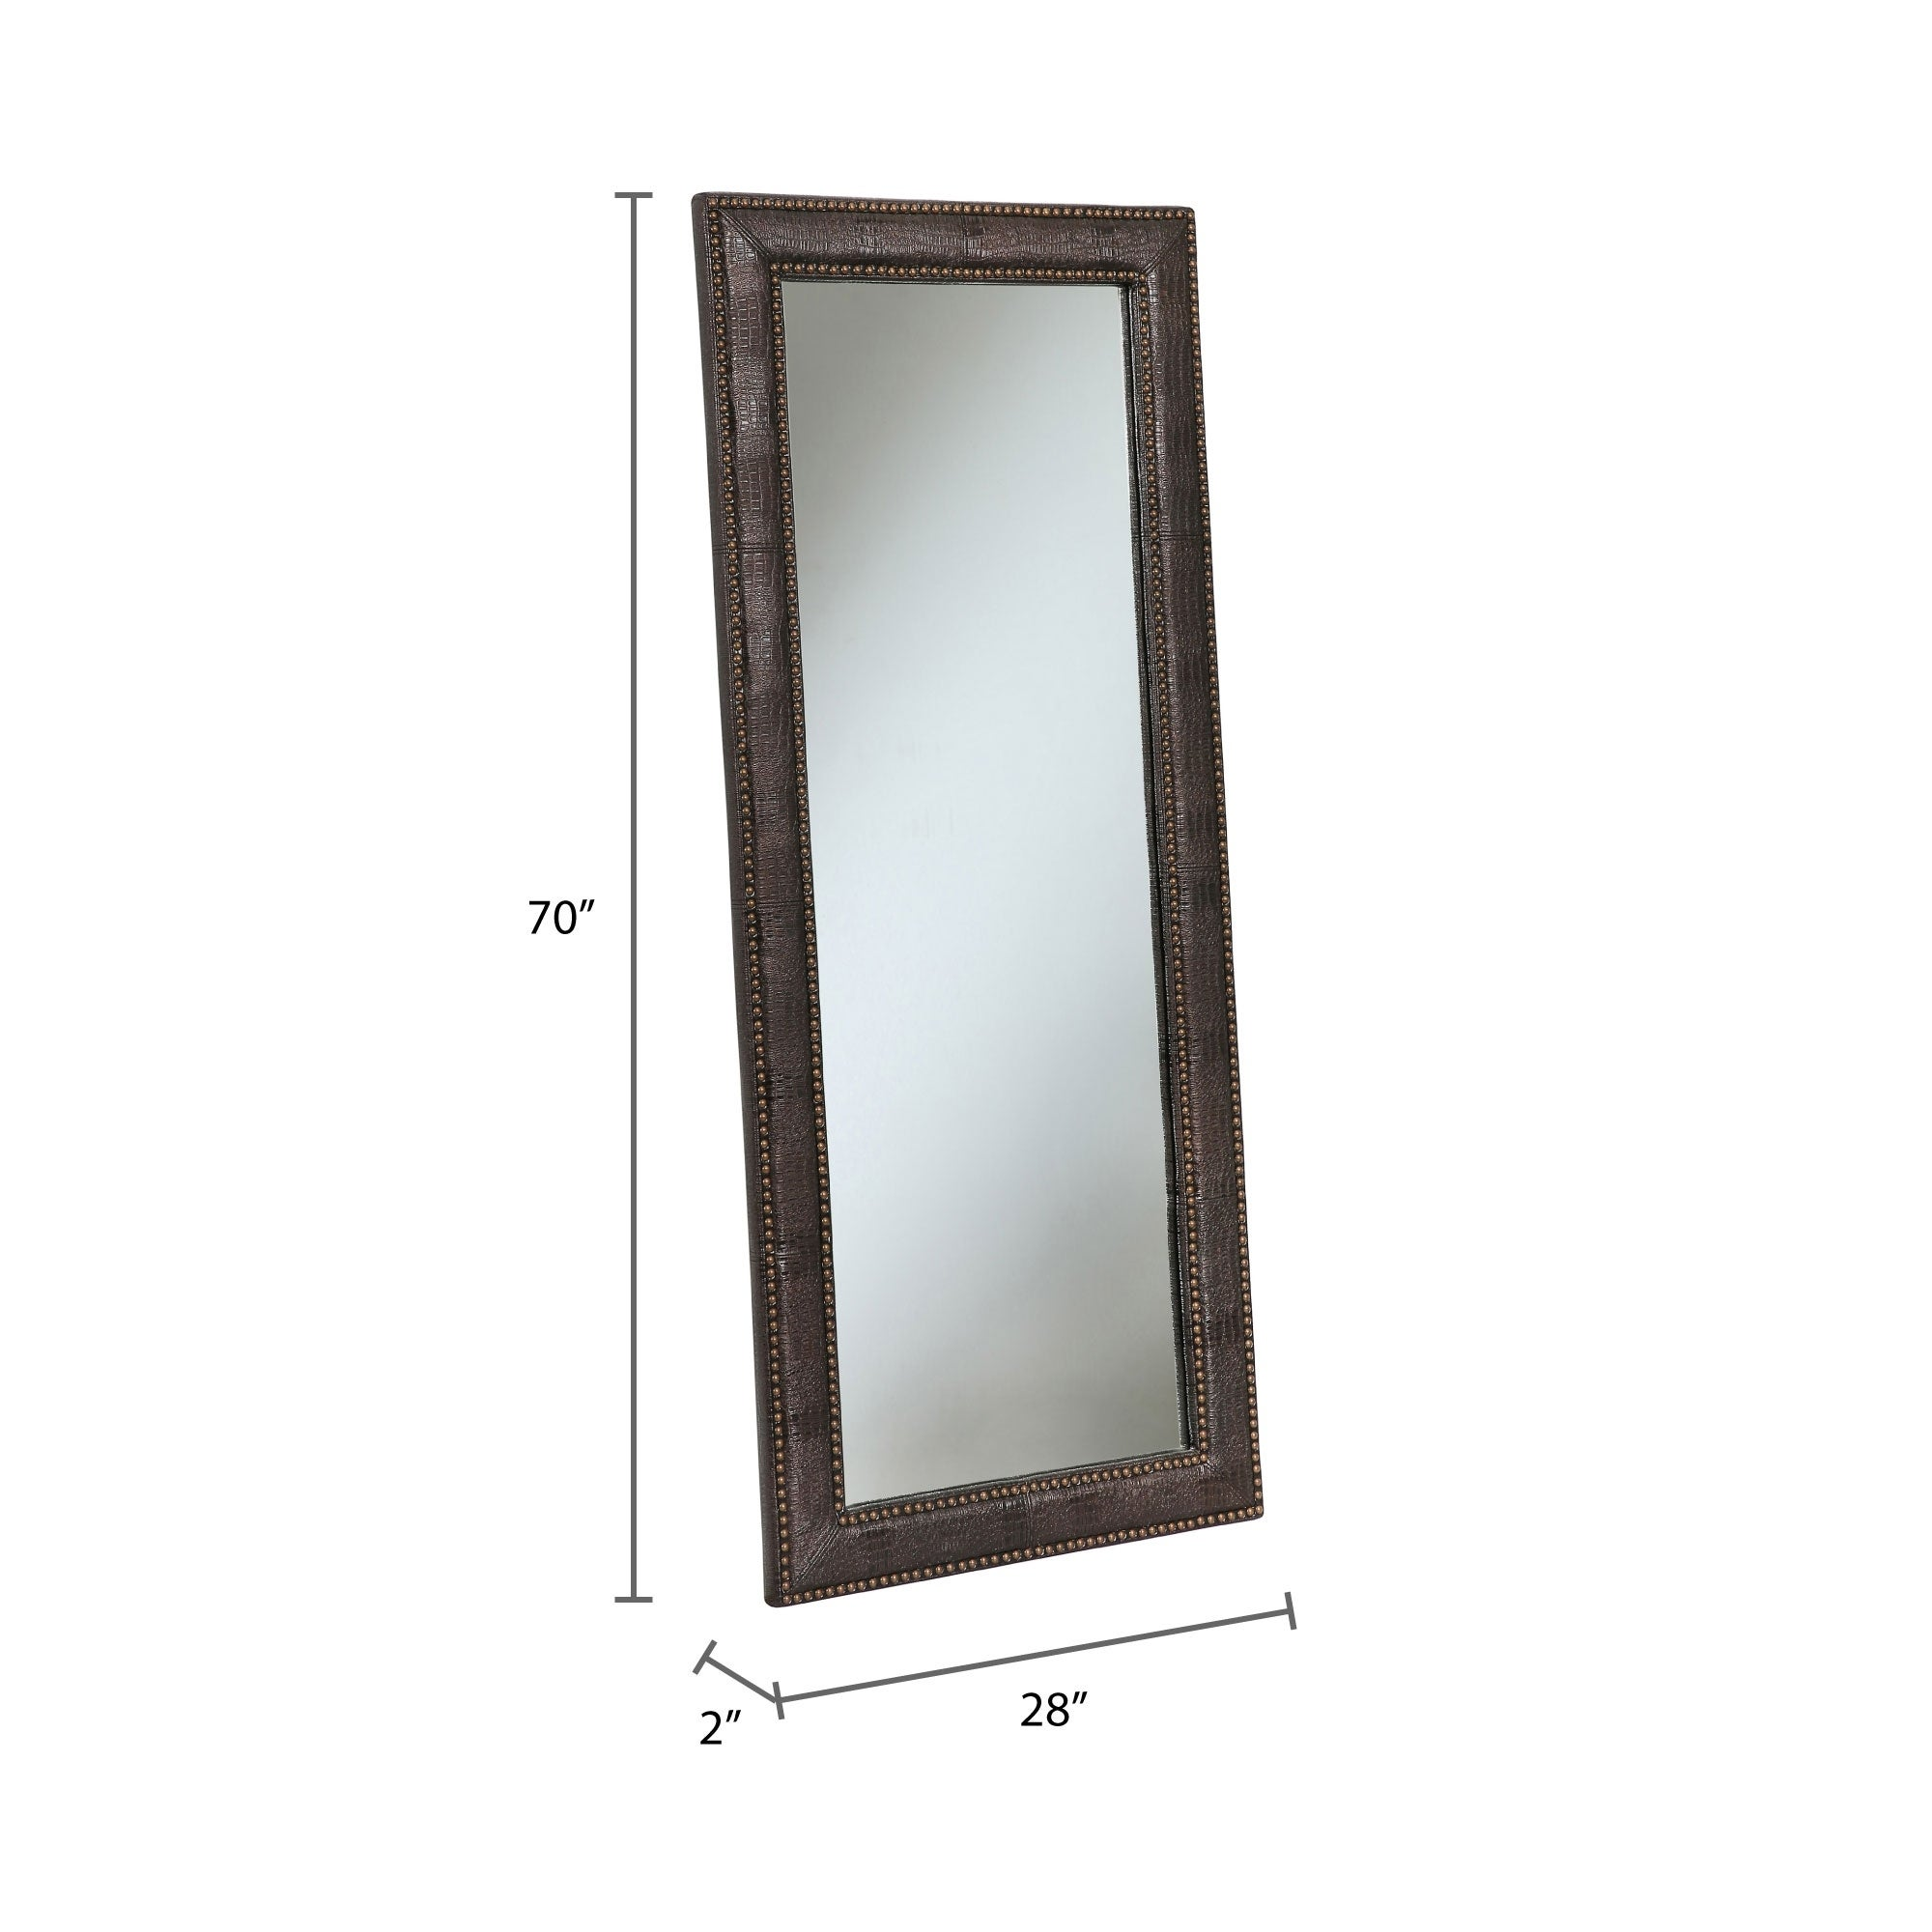 70 inch mirror double vanity shop abbyson delano leather 70inch floor mirror on sale free shipping today overstockcom 14463401